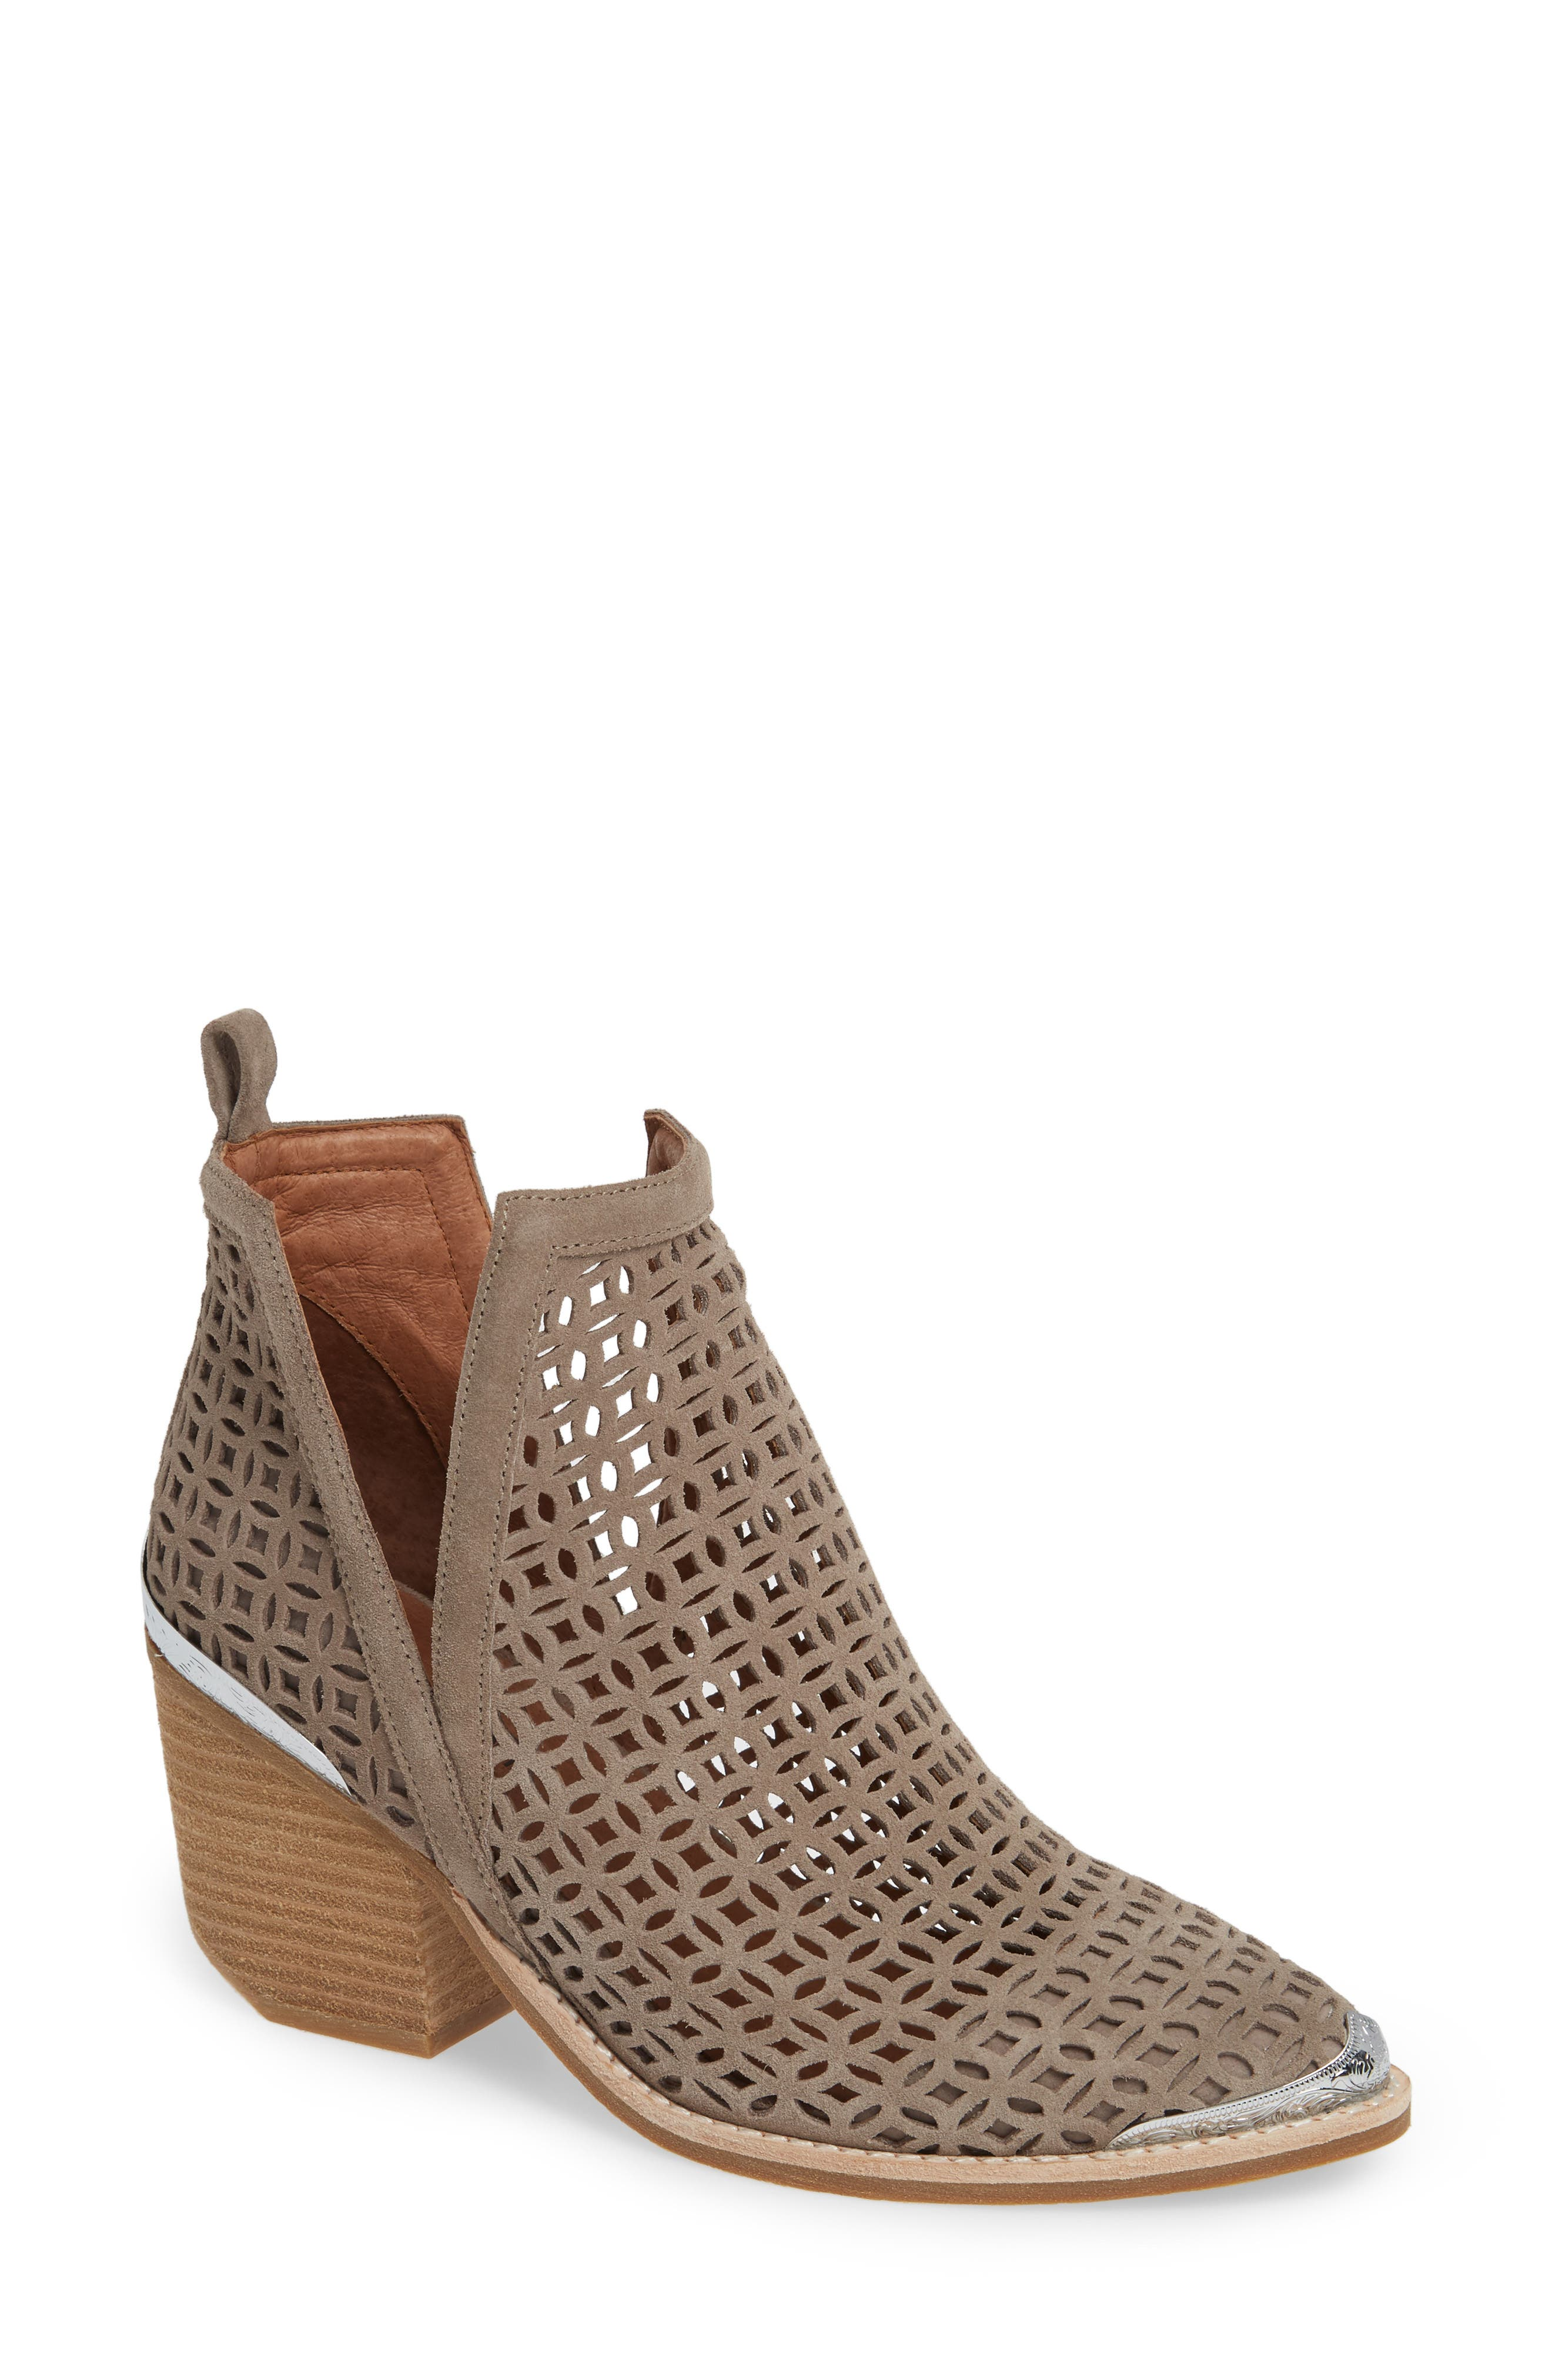 JEFFREY CAMPBELL, Cromwell-C2 Perforated Bootie, Main thumbnail 1, color, TAUPE SUEDE